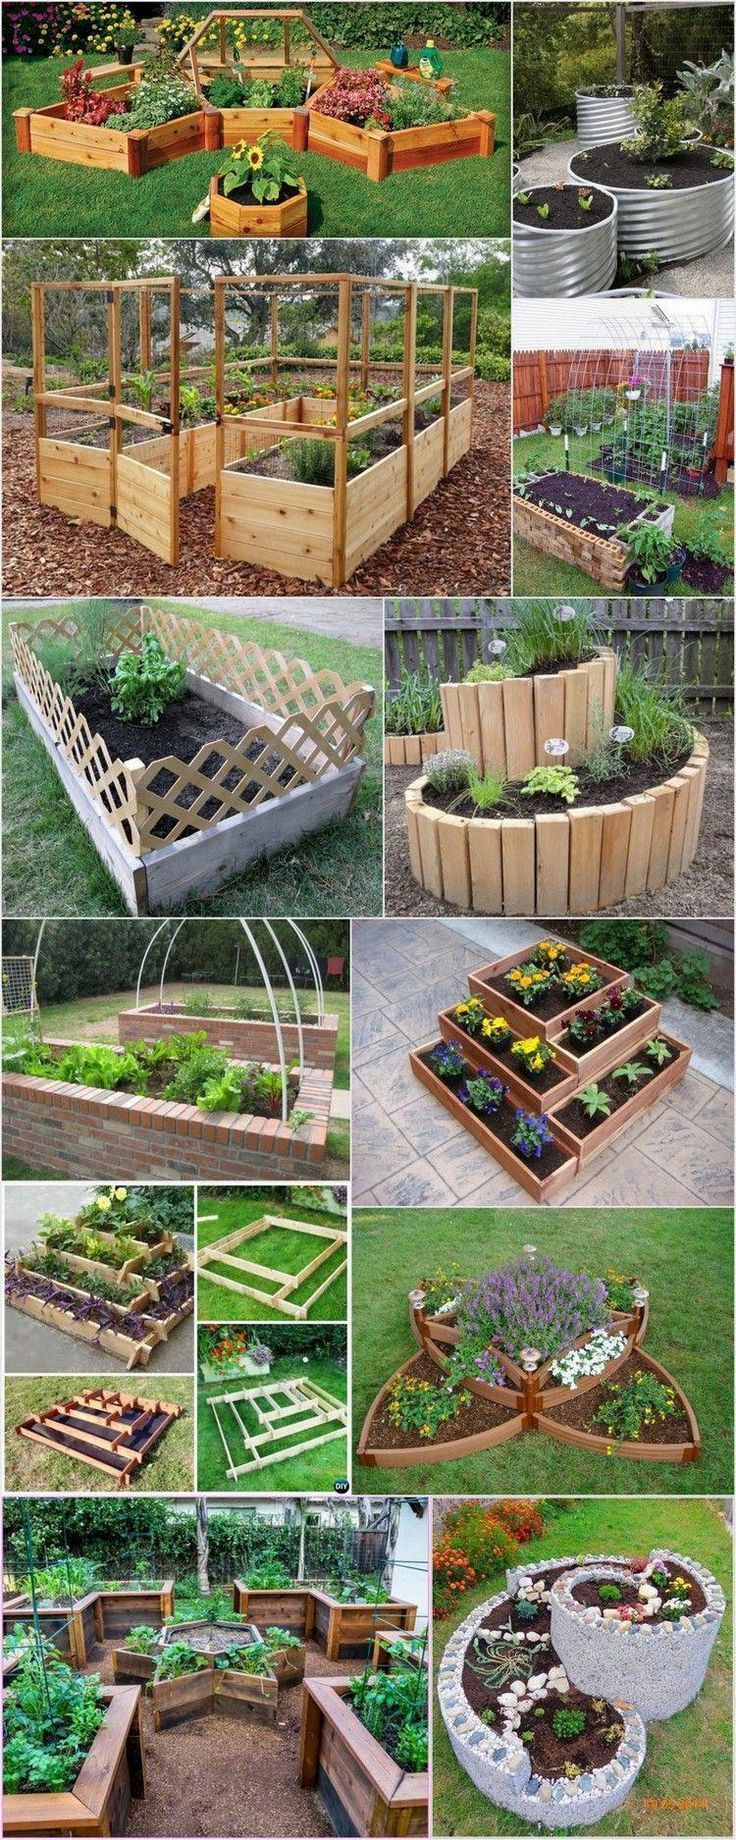 Cost Effectively Raised Garden Bed Ideas To Increase The Value Of Your Exterior Surface Upported Enf Arka Bahce Peyzaj Duzenlemesi Bahce Yatagi Arka Bahceler